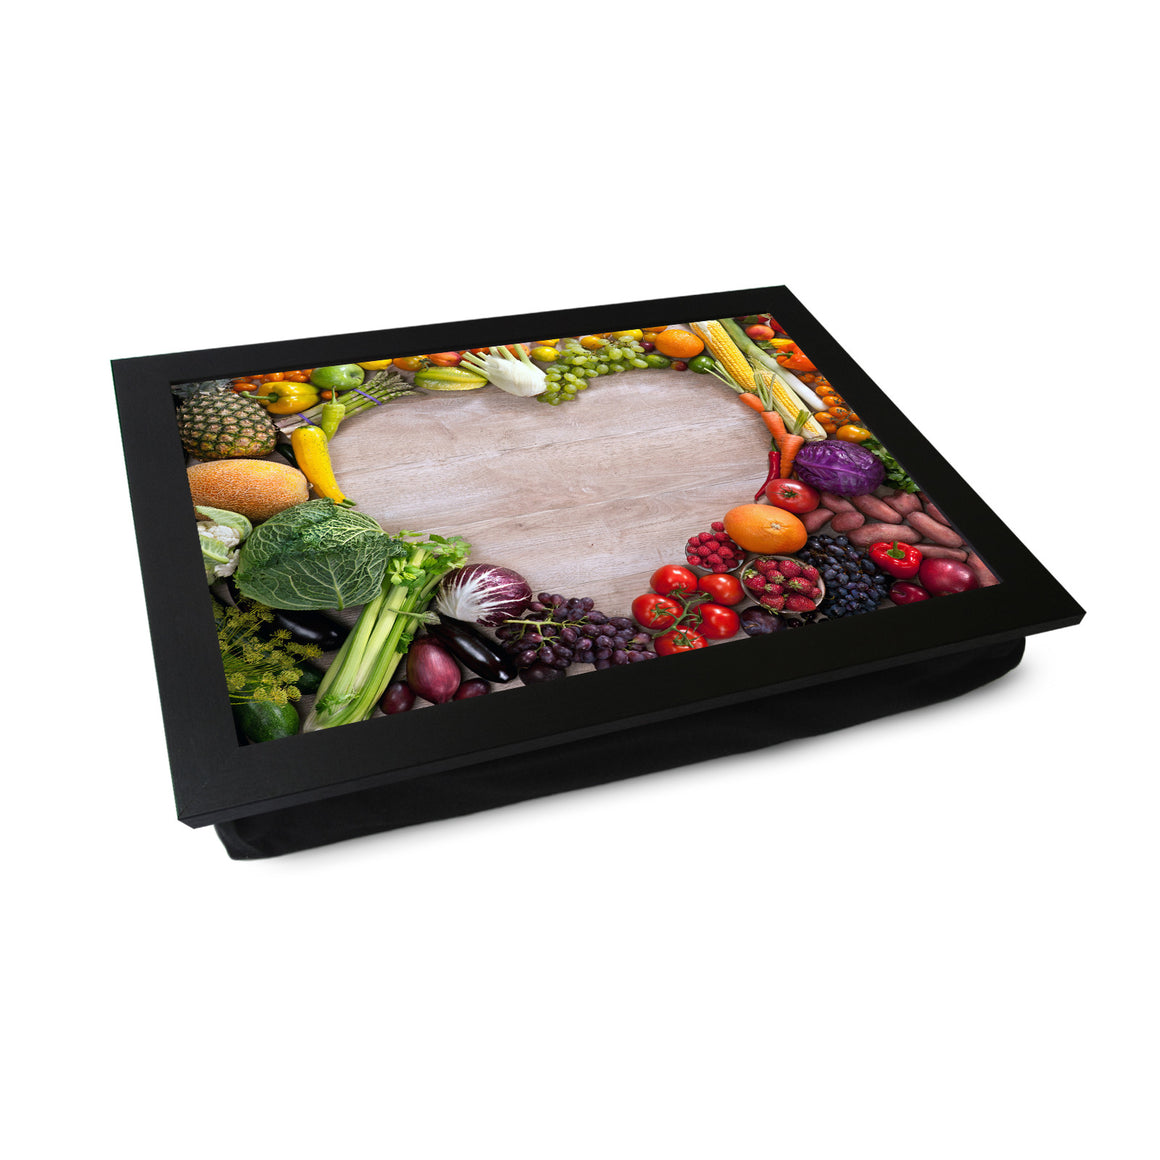 Vegetable Heart Lap Tray - L0073